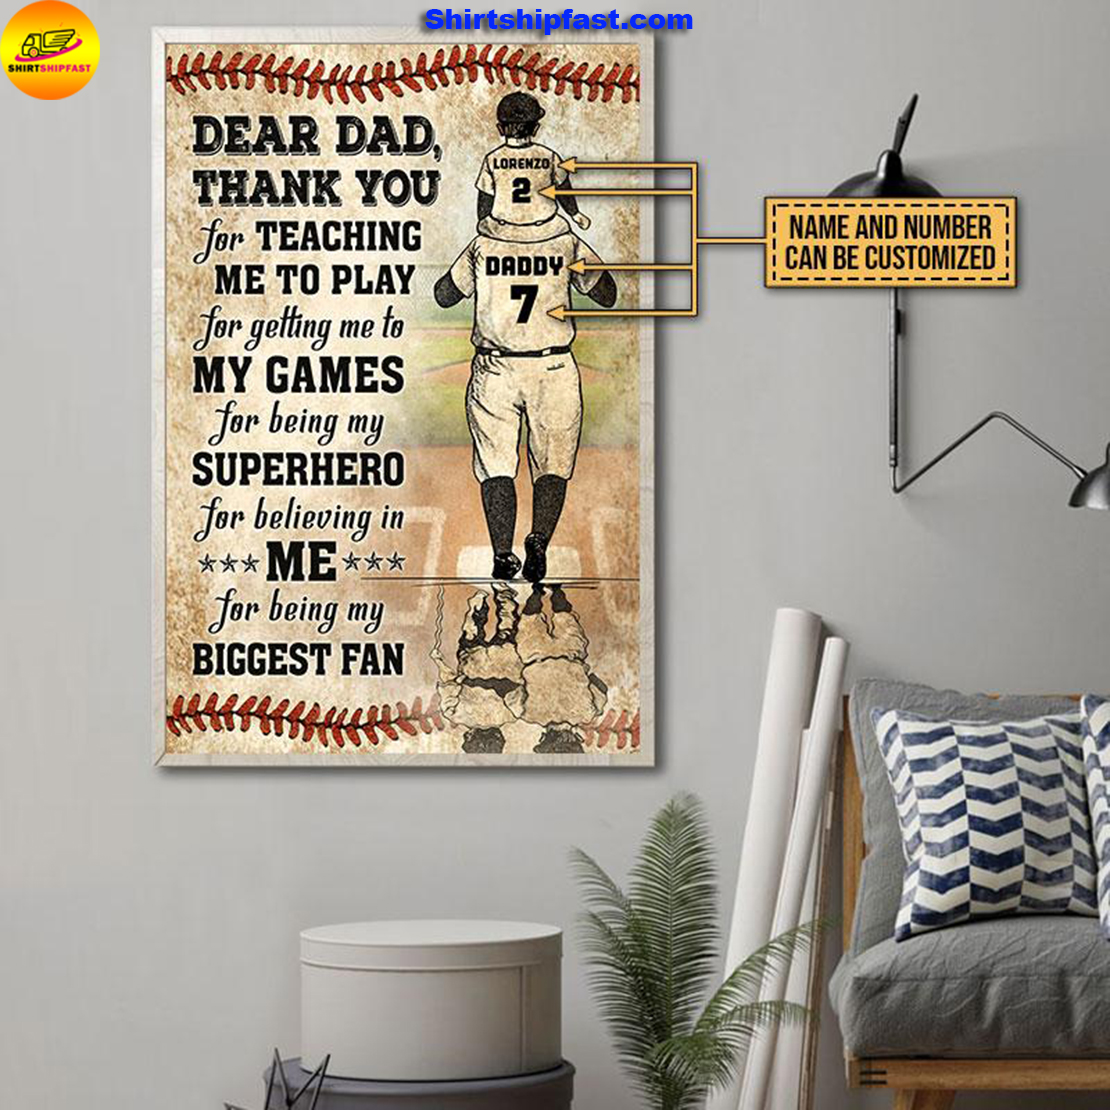 Personalized baseball dad and son thank you customized poster - Picture 2